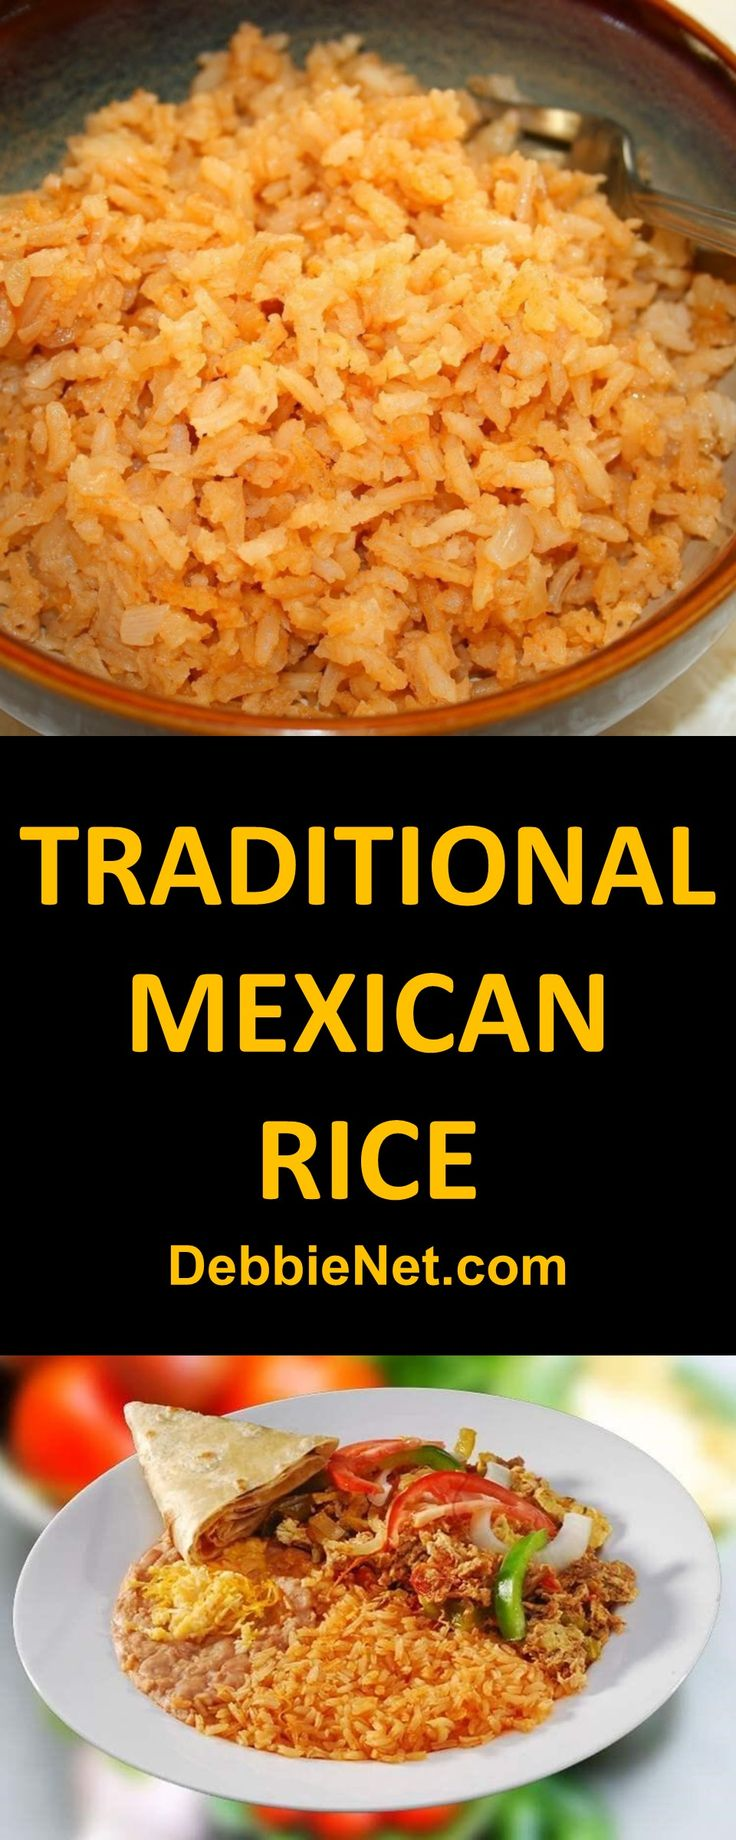 A great addition to taco night. Mexican rice is easy to make and has so much more flavor that regular white rice. | DebbieNet.com